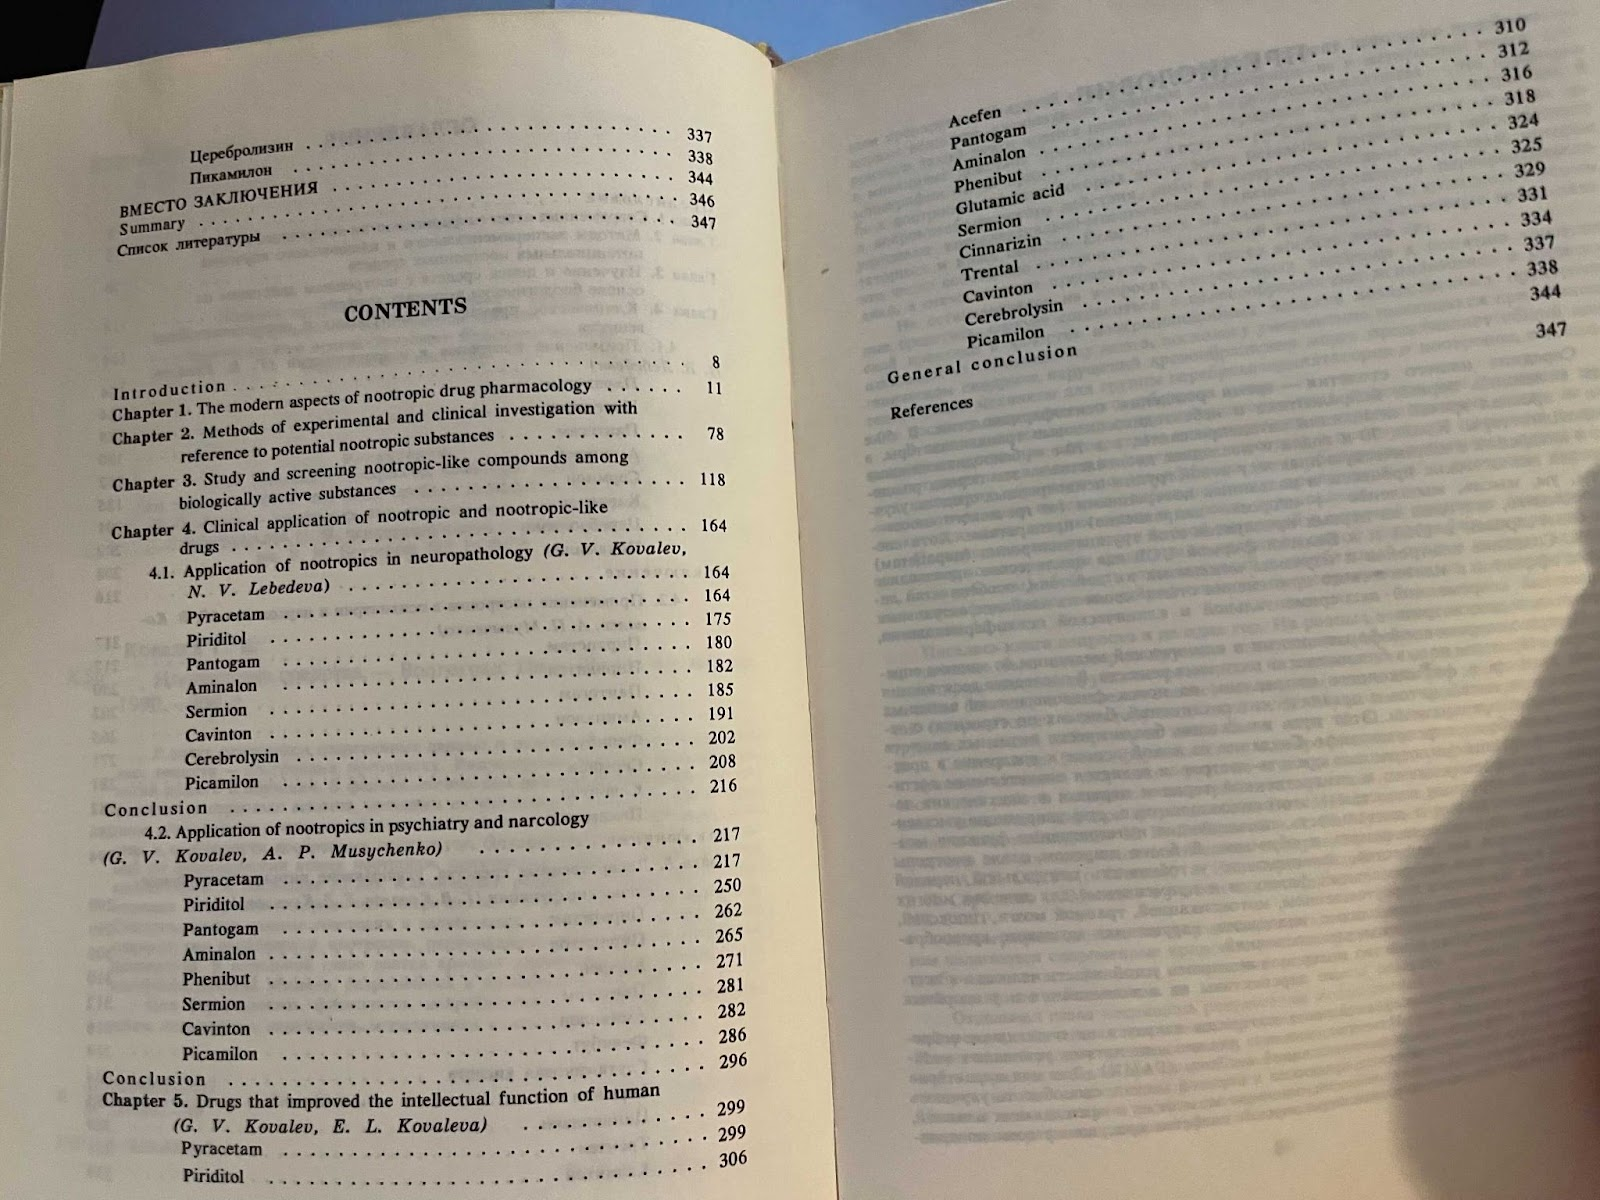 The contents of the Nootropics book